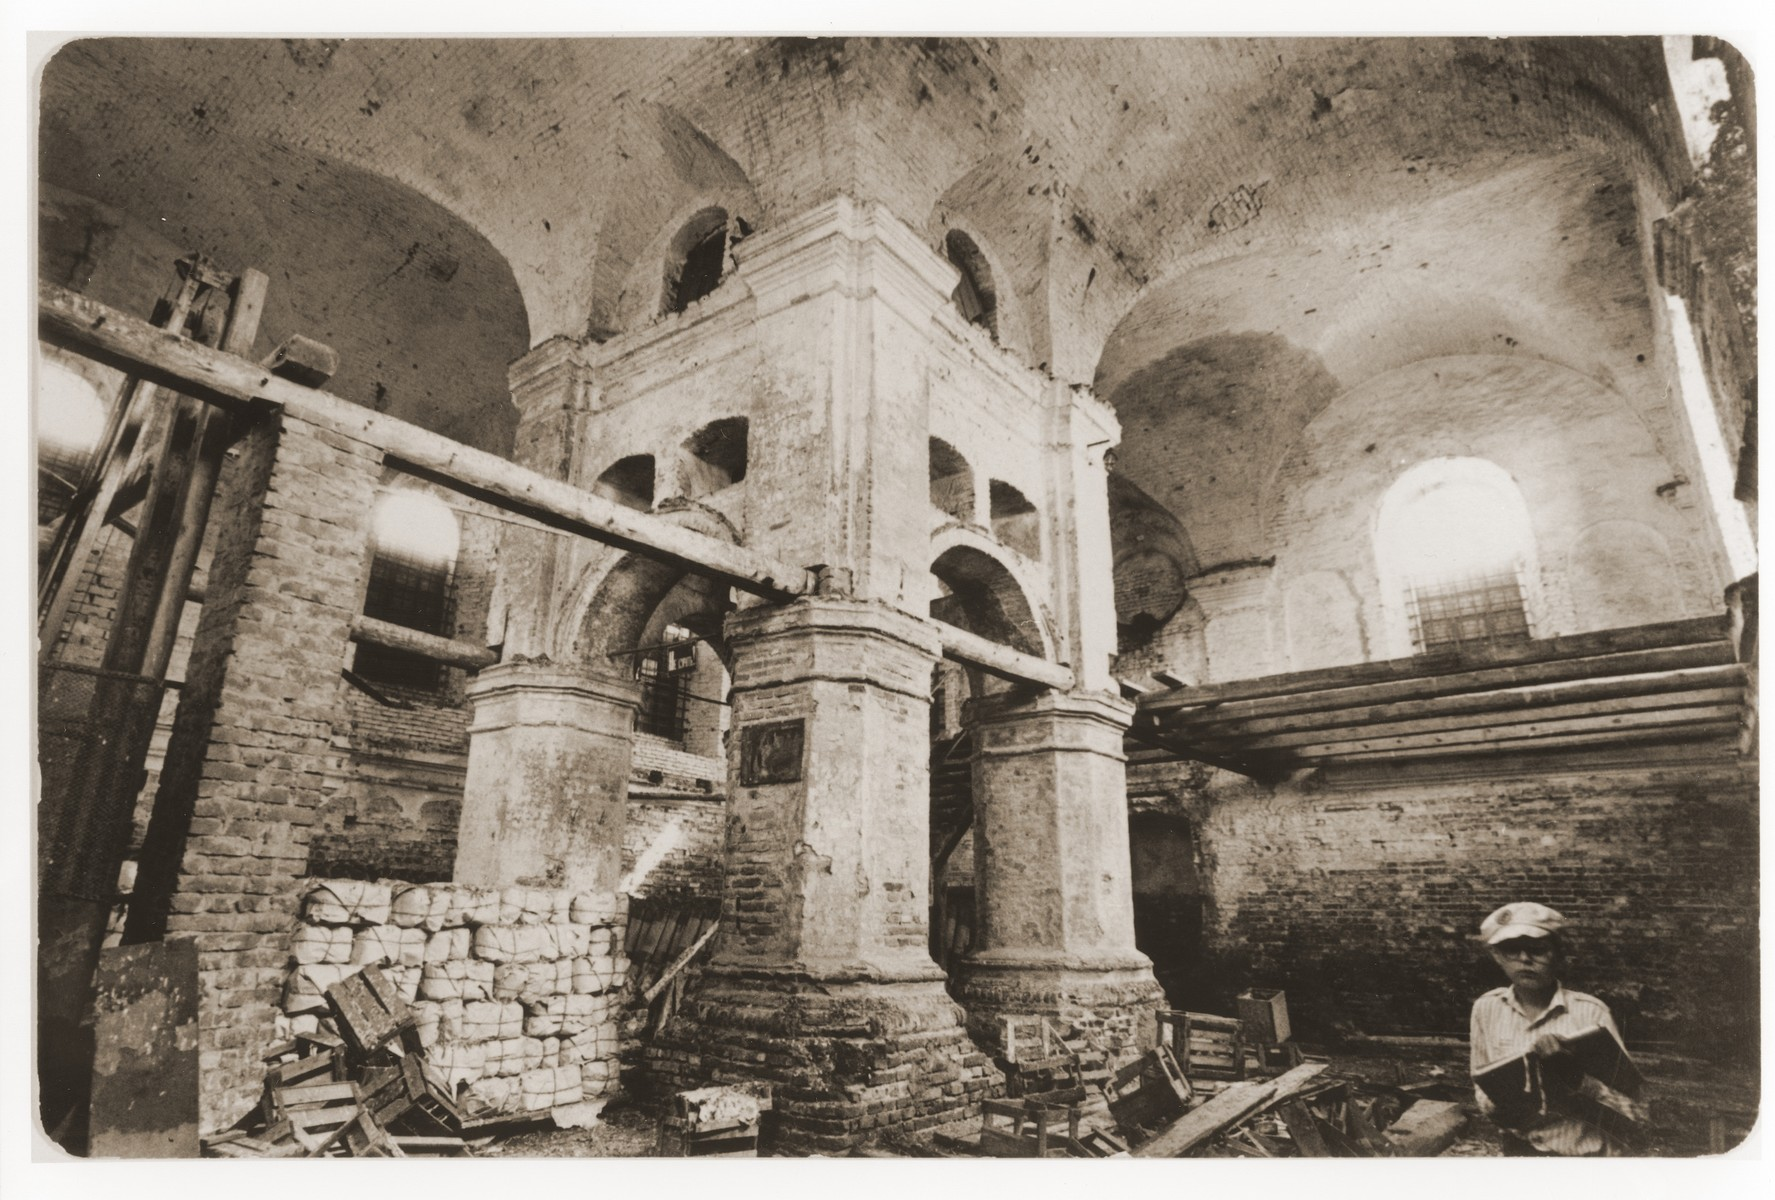 Interior of a destroyed synagogue in Bykhov.